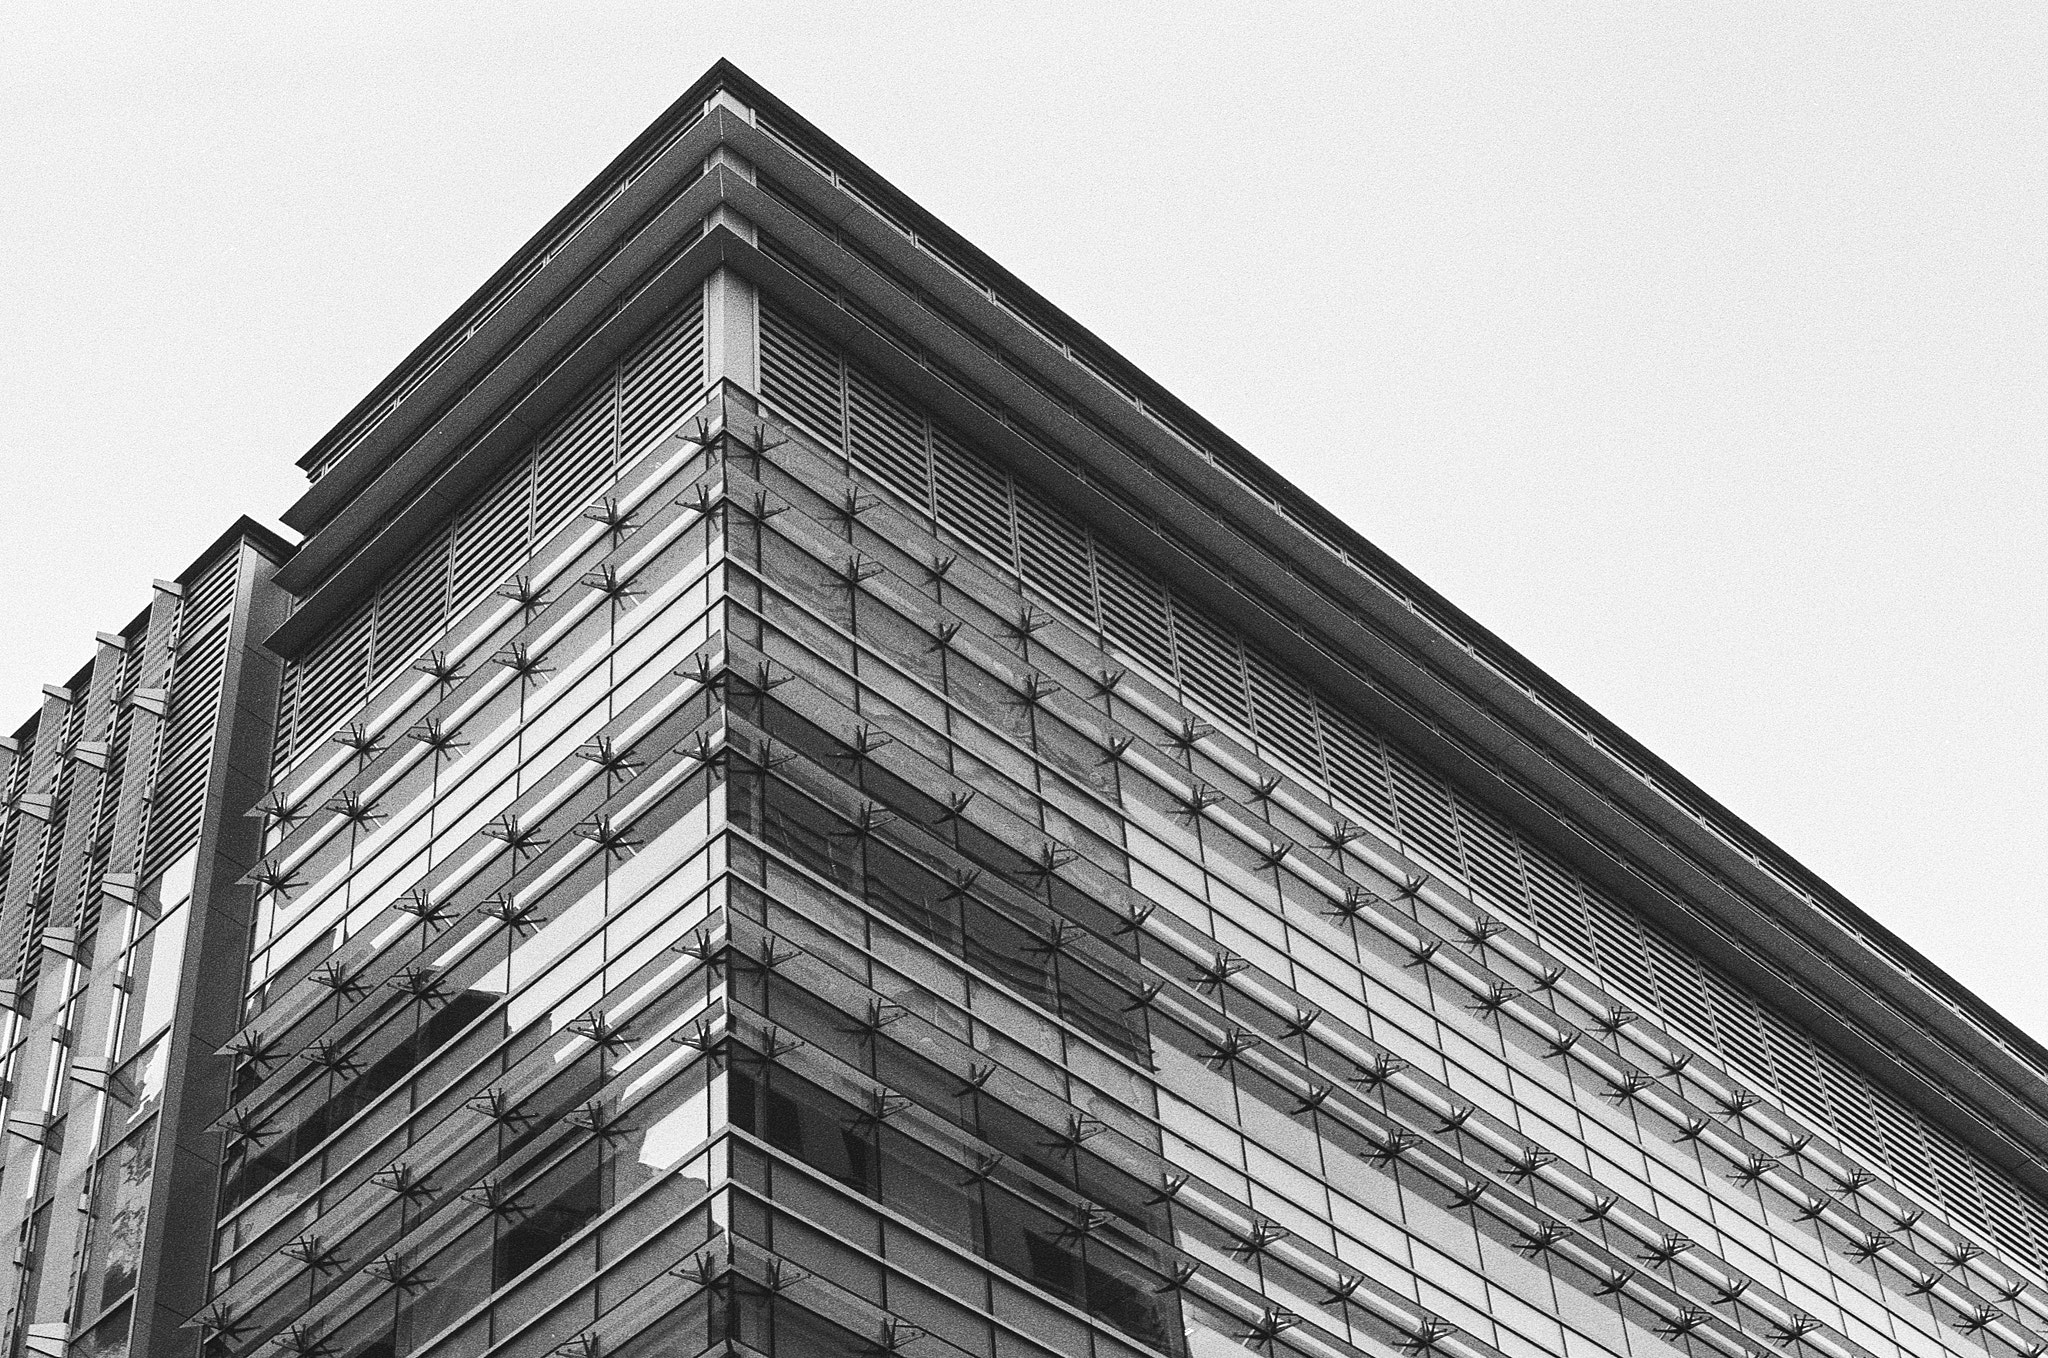 Photograph Brutalism by Ash Furrow on 500px